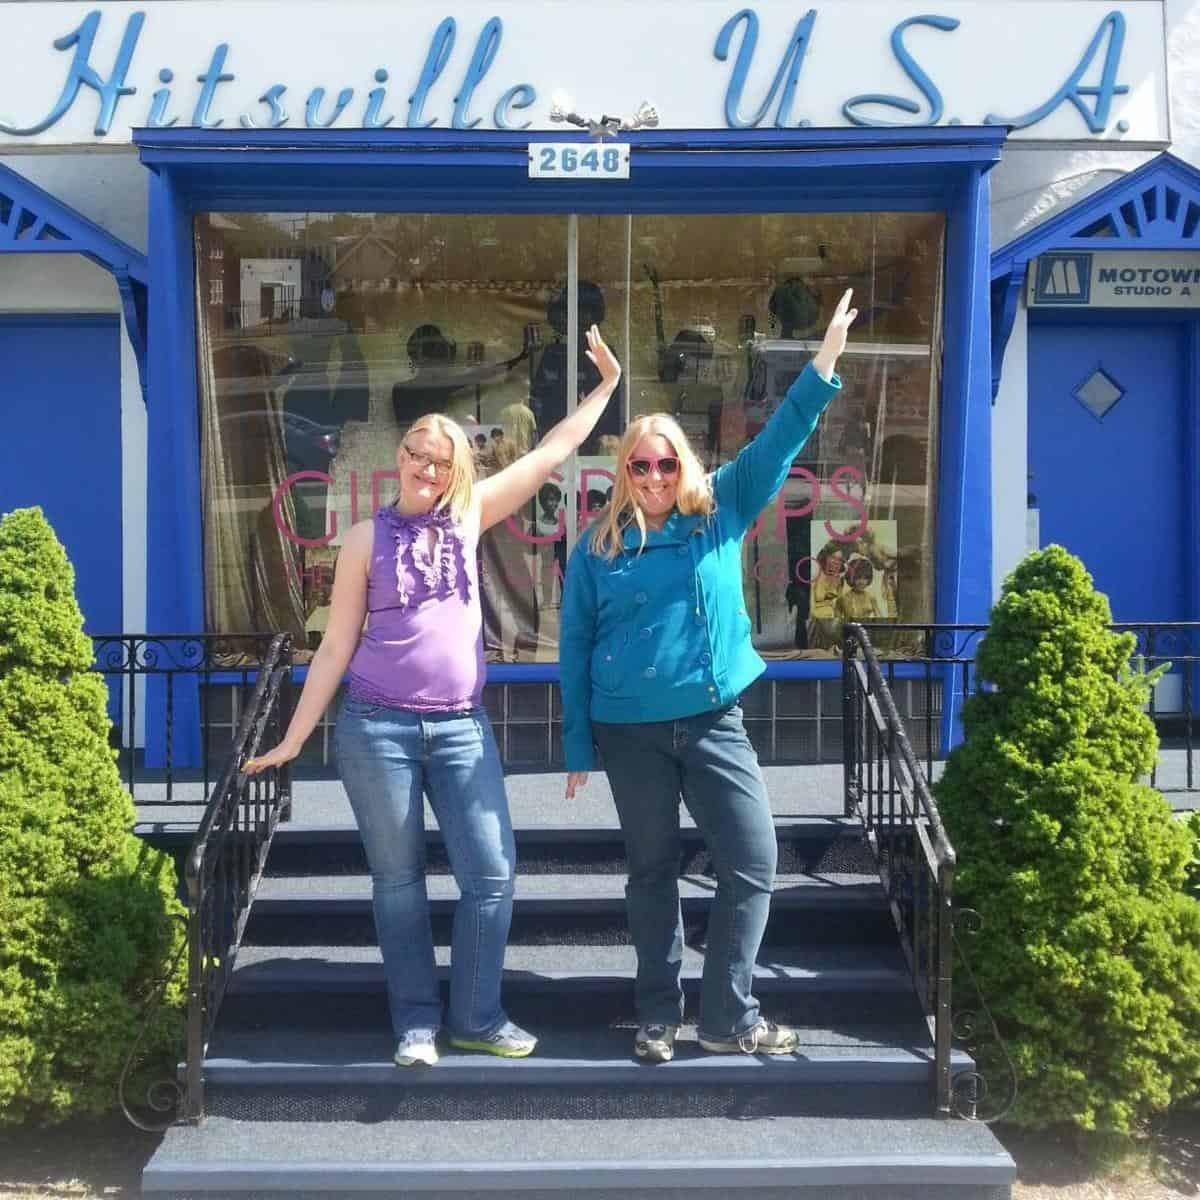 Supremes in the Making at Motown Museum Hitsville U.S.A.